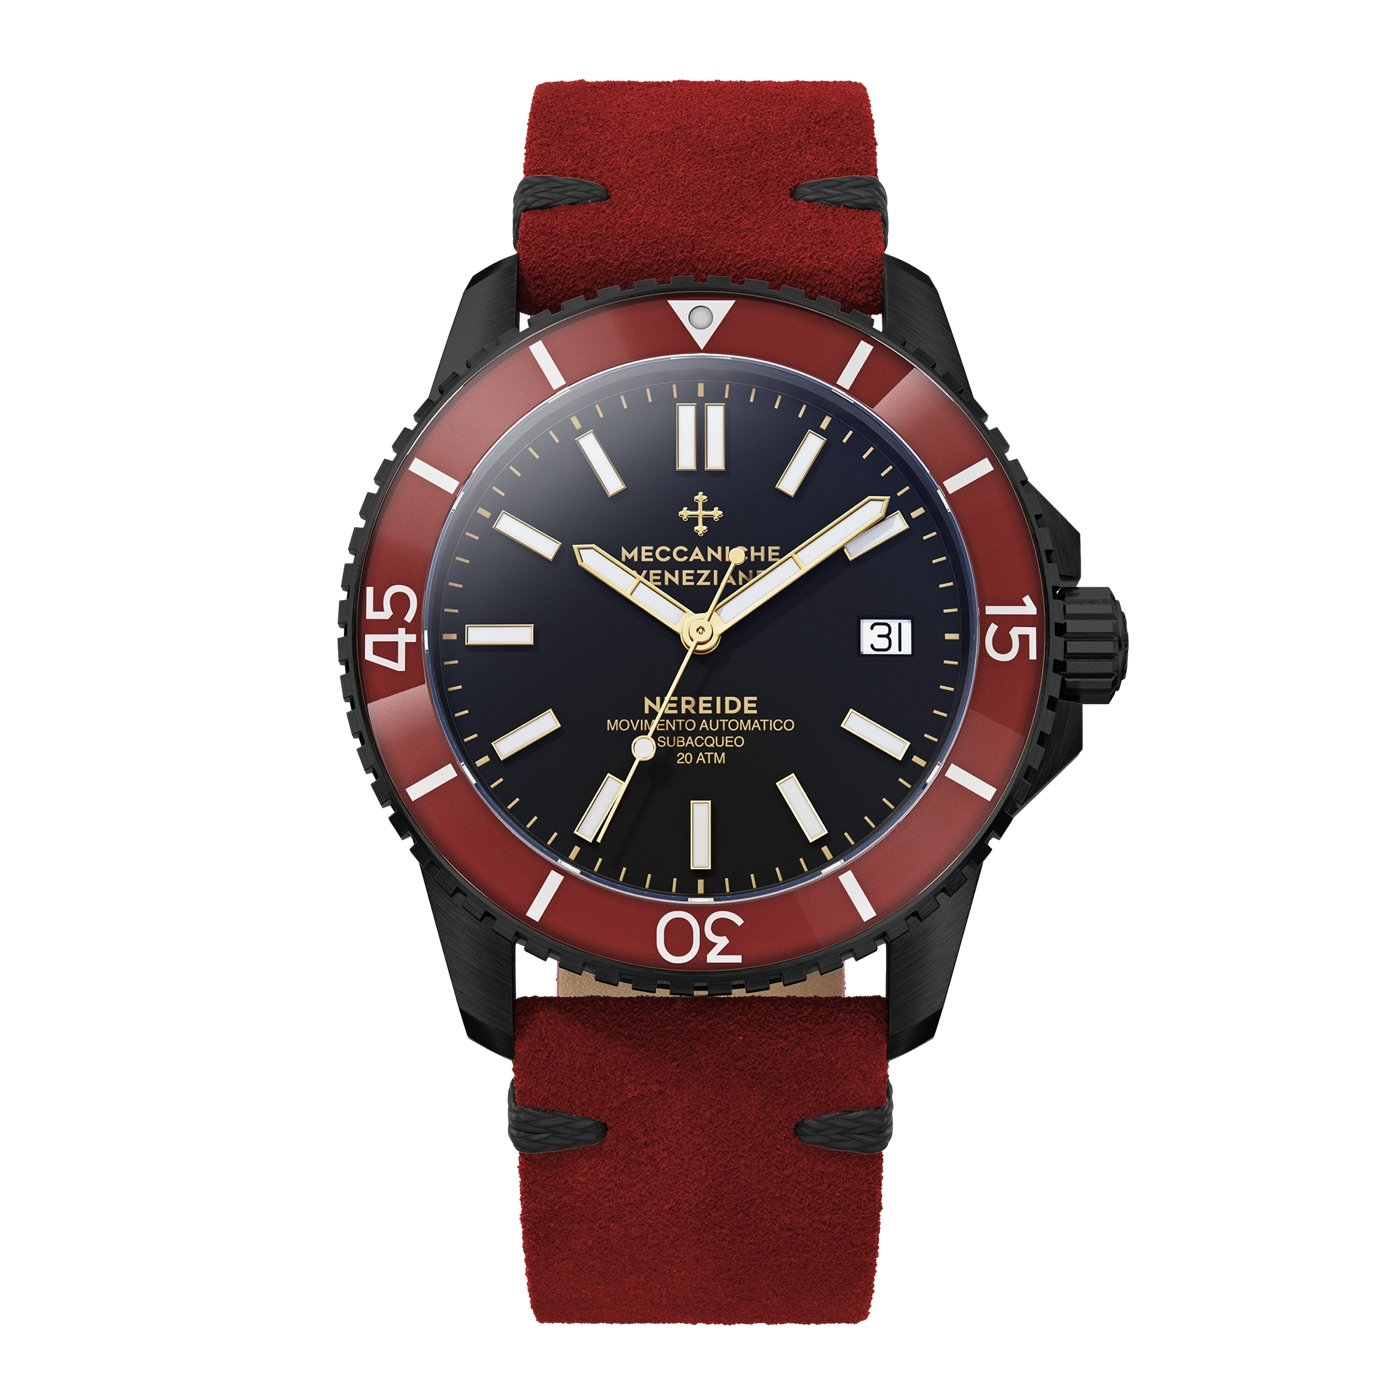 Meccaniche Veneziane Nereide 4.0 Watch Diver Black PVD - Watches & Crystals